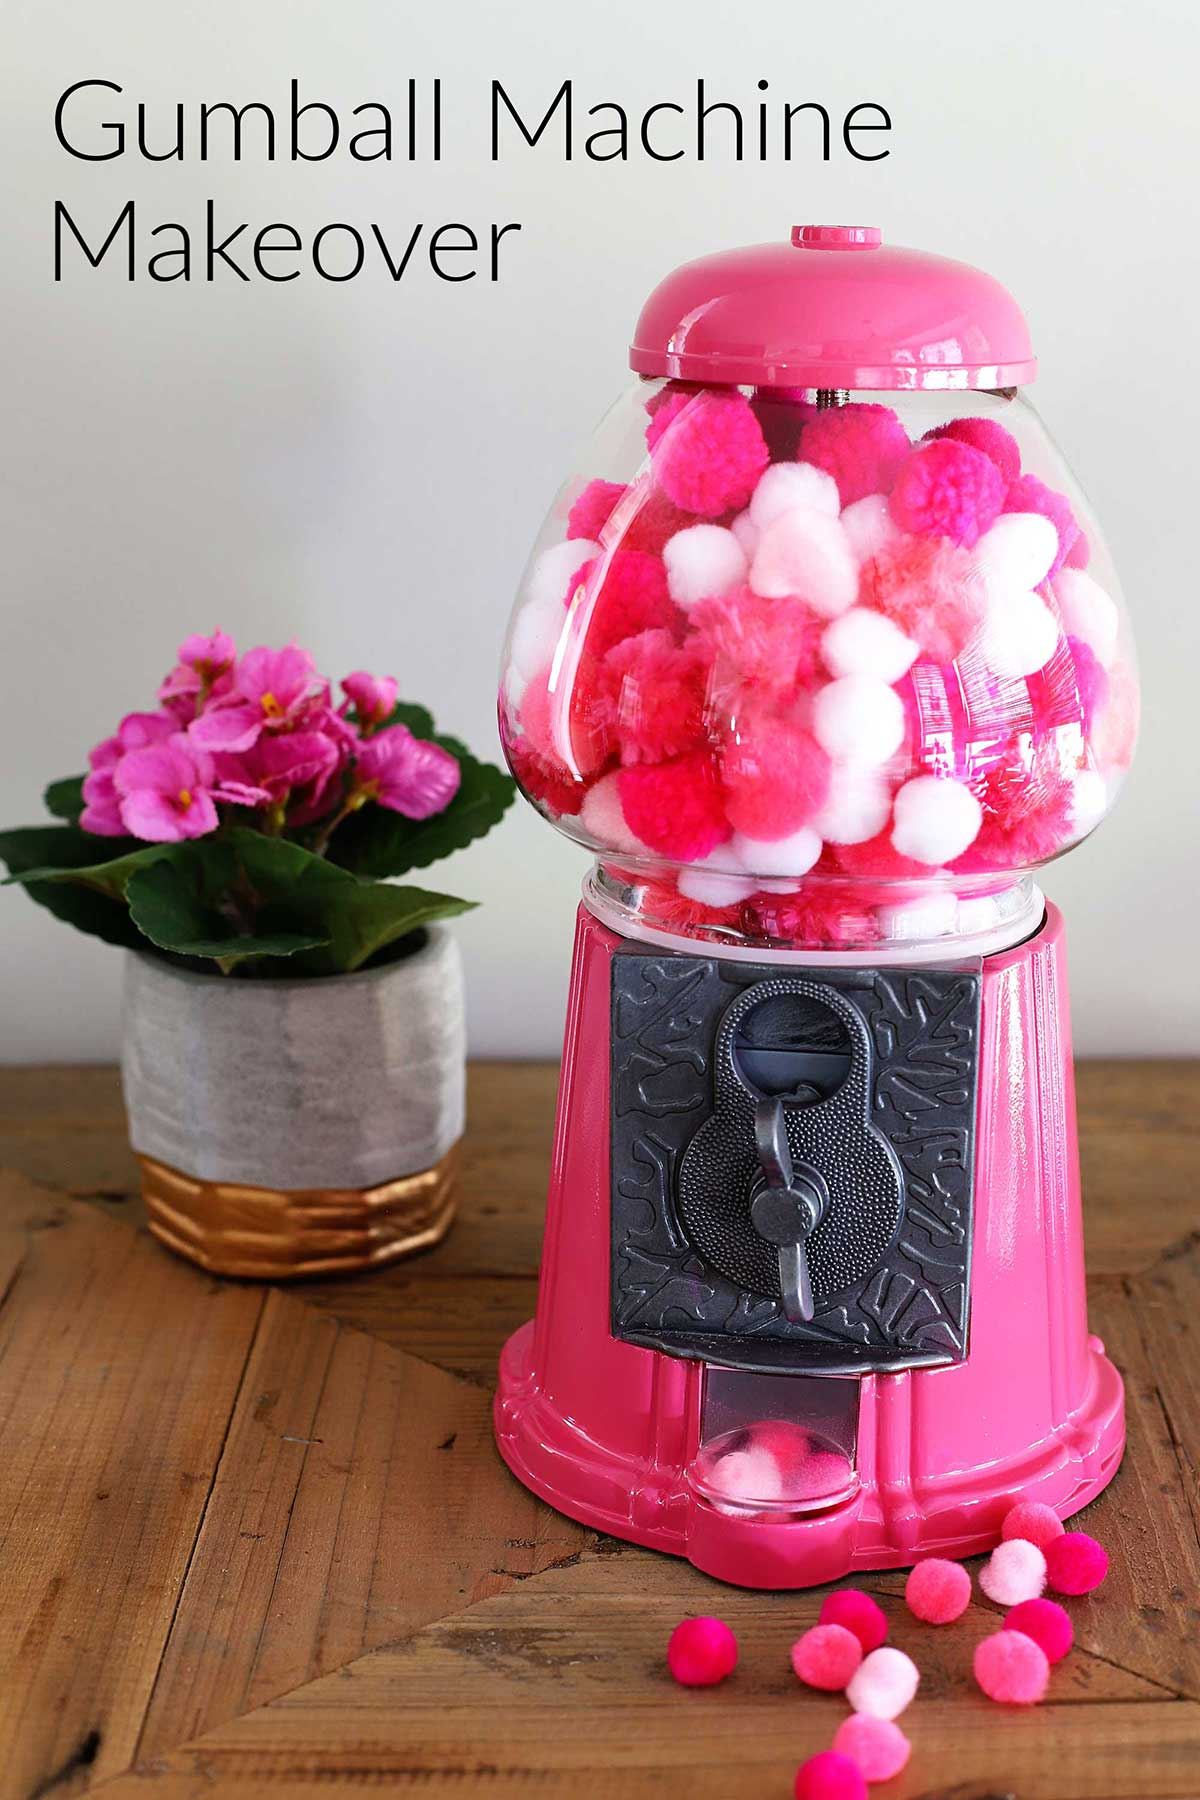 Simple way to upcycle a gumball machine into CUTE and COLORFUL home decor. And these gumball machines can commonly be found at thrift stores!